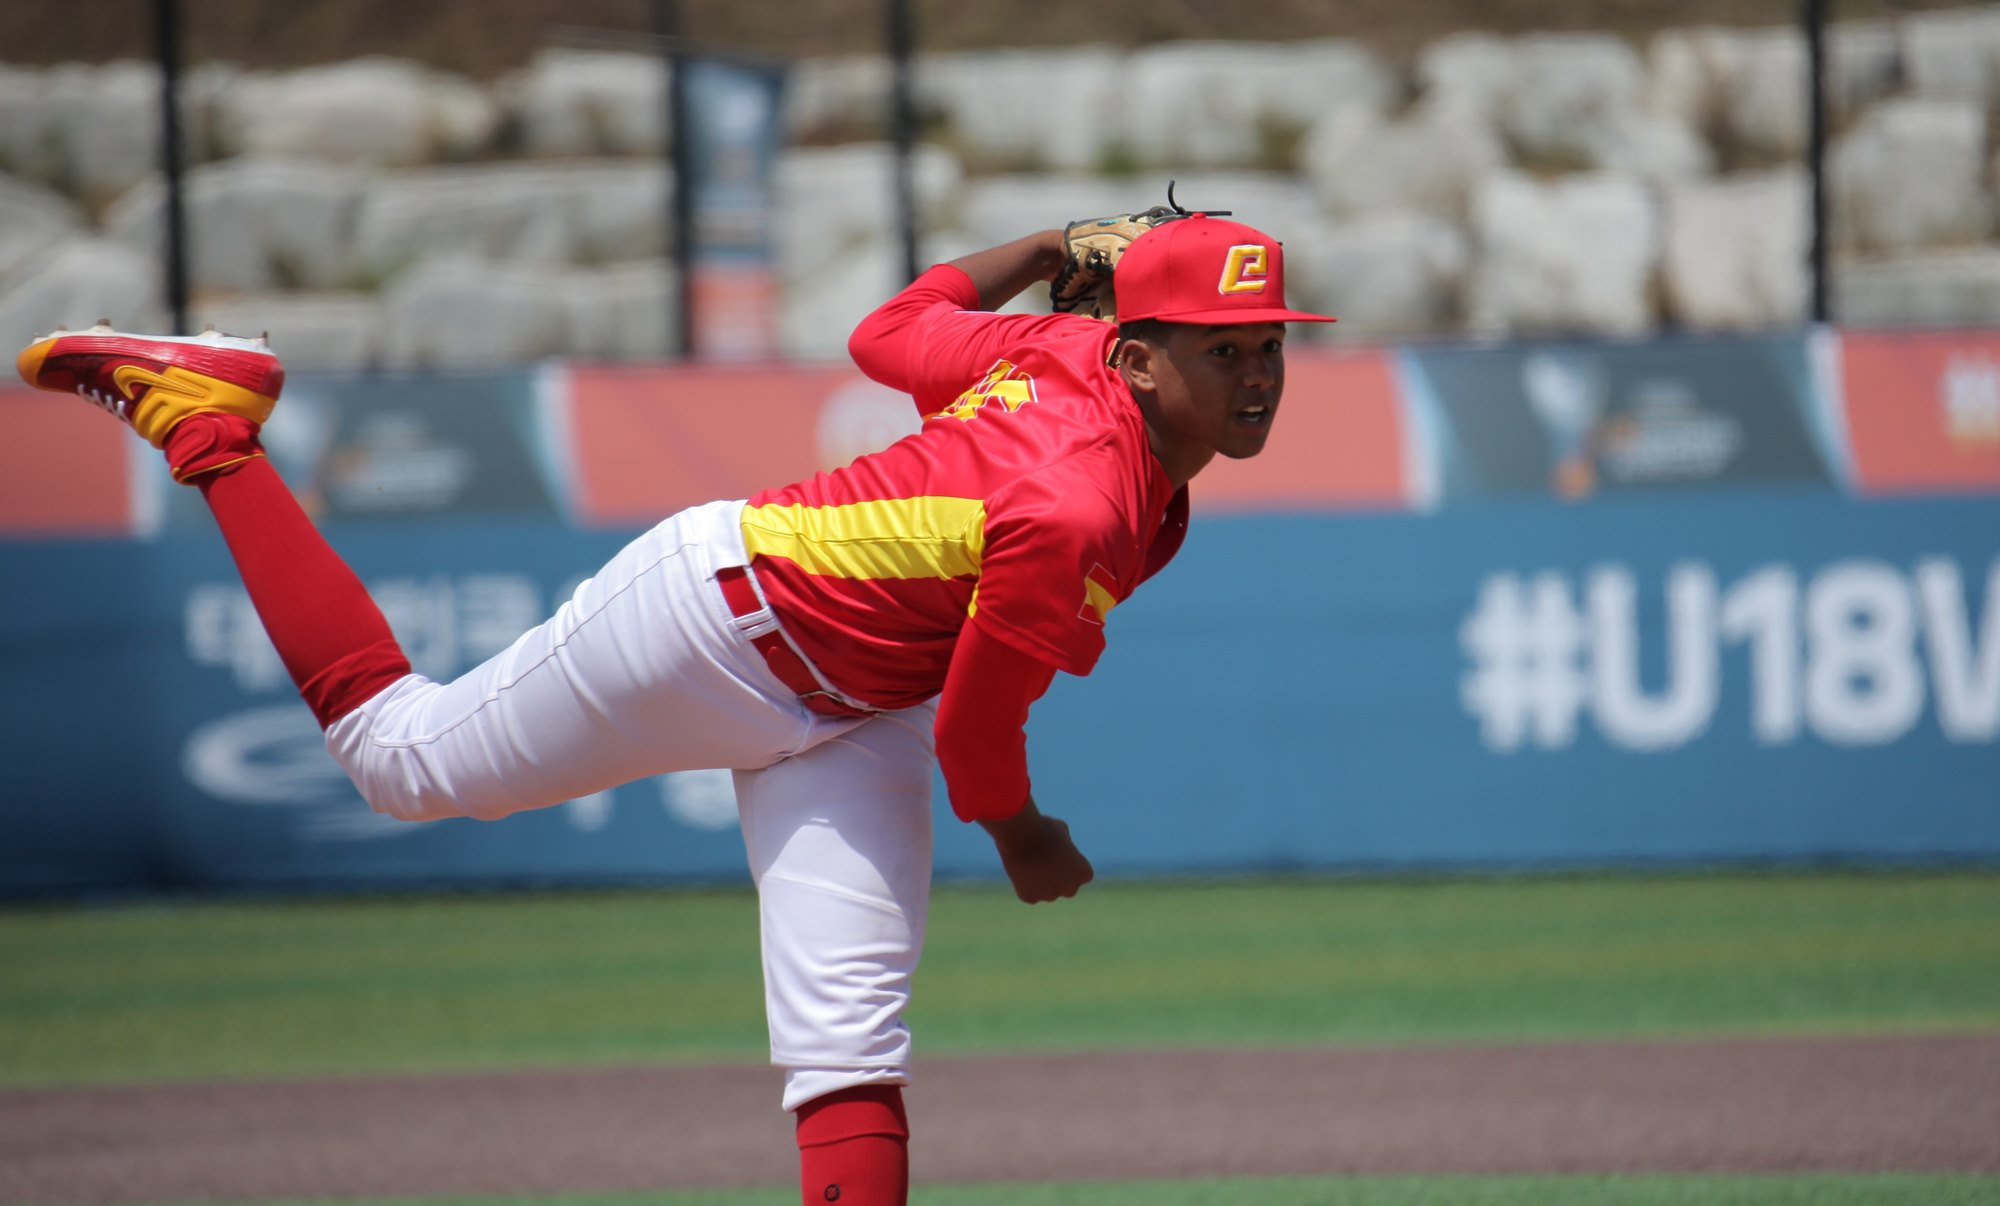 Justin Luna pitched seven strong innings for Spain